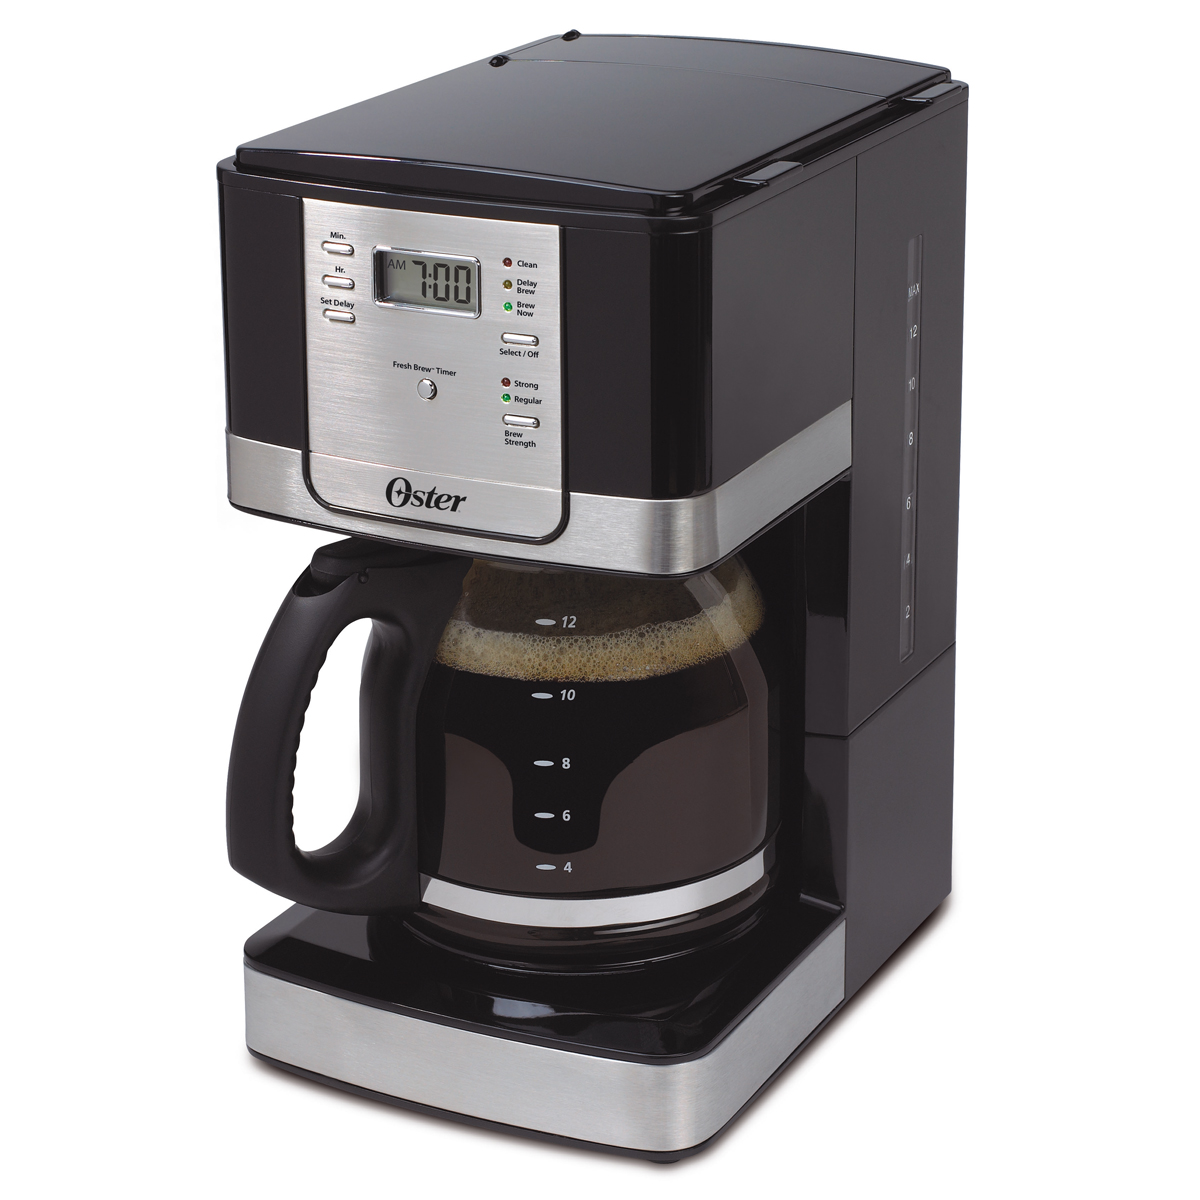 oster 12 cup programmable coffee maker 3314 33 parts oster canada. Black Bedroom Furniture Sets. Home Design Ideas